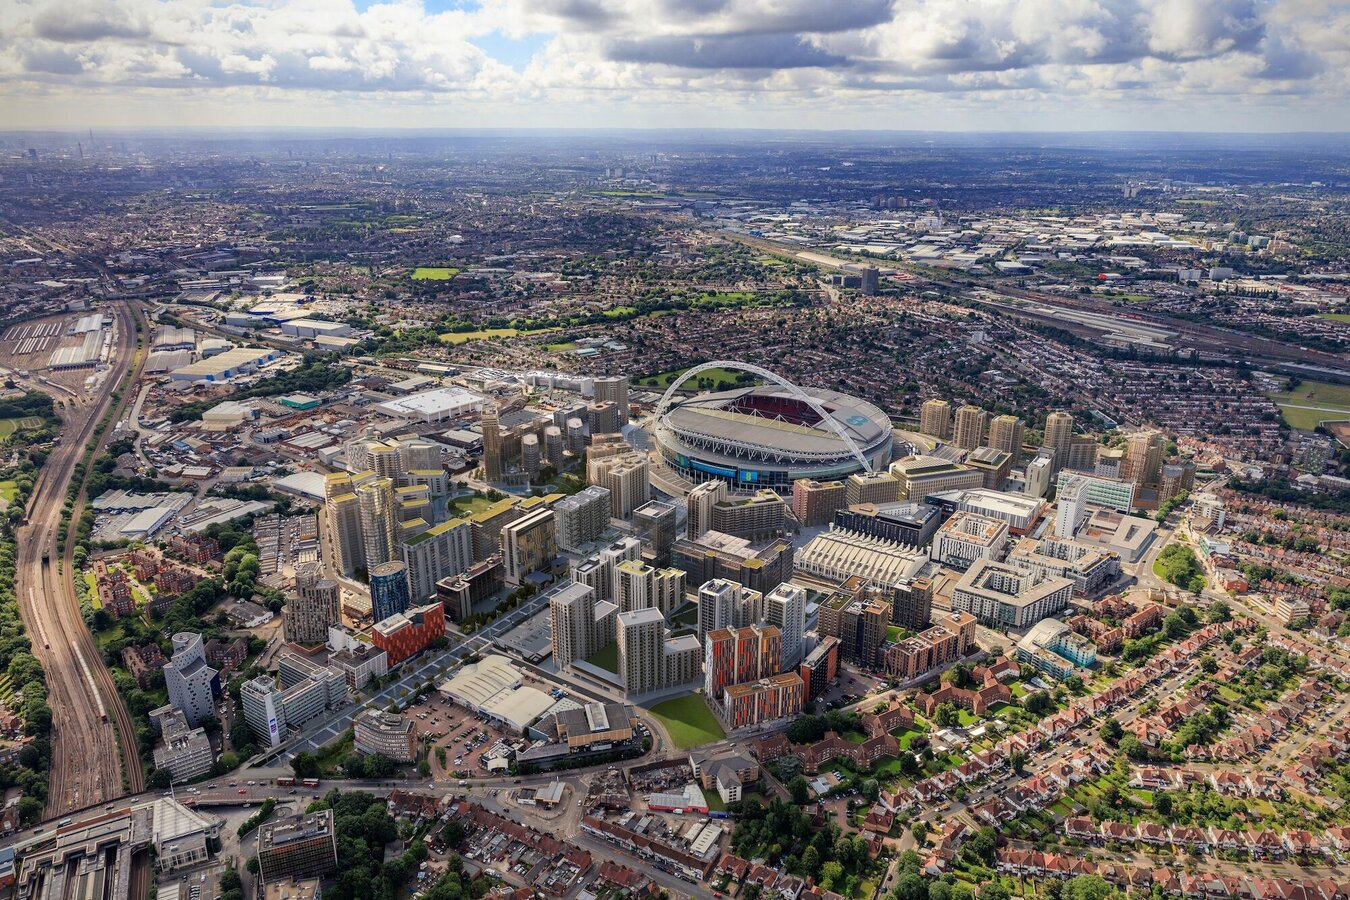 CS 77 Windows, CS 77 Doors, CP 155 (-LS) Sliding Systems and CW 50 Curtain Walls - Wembley Park located in London, United Kingdom